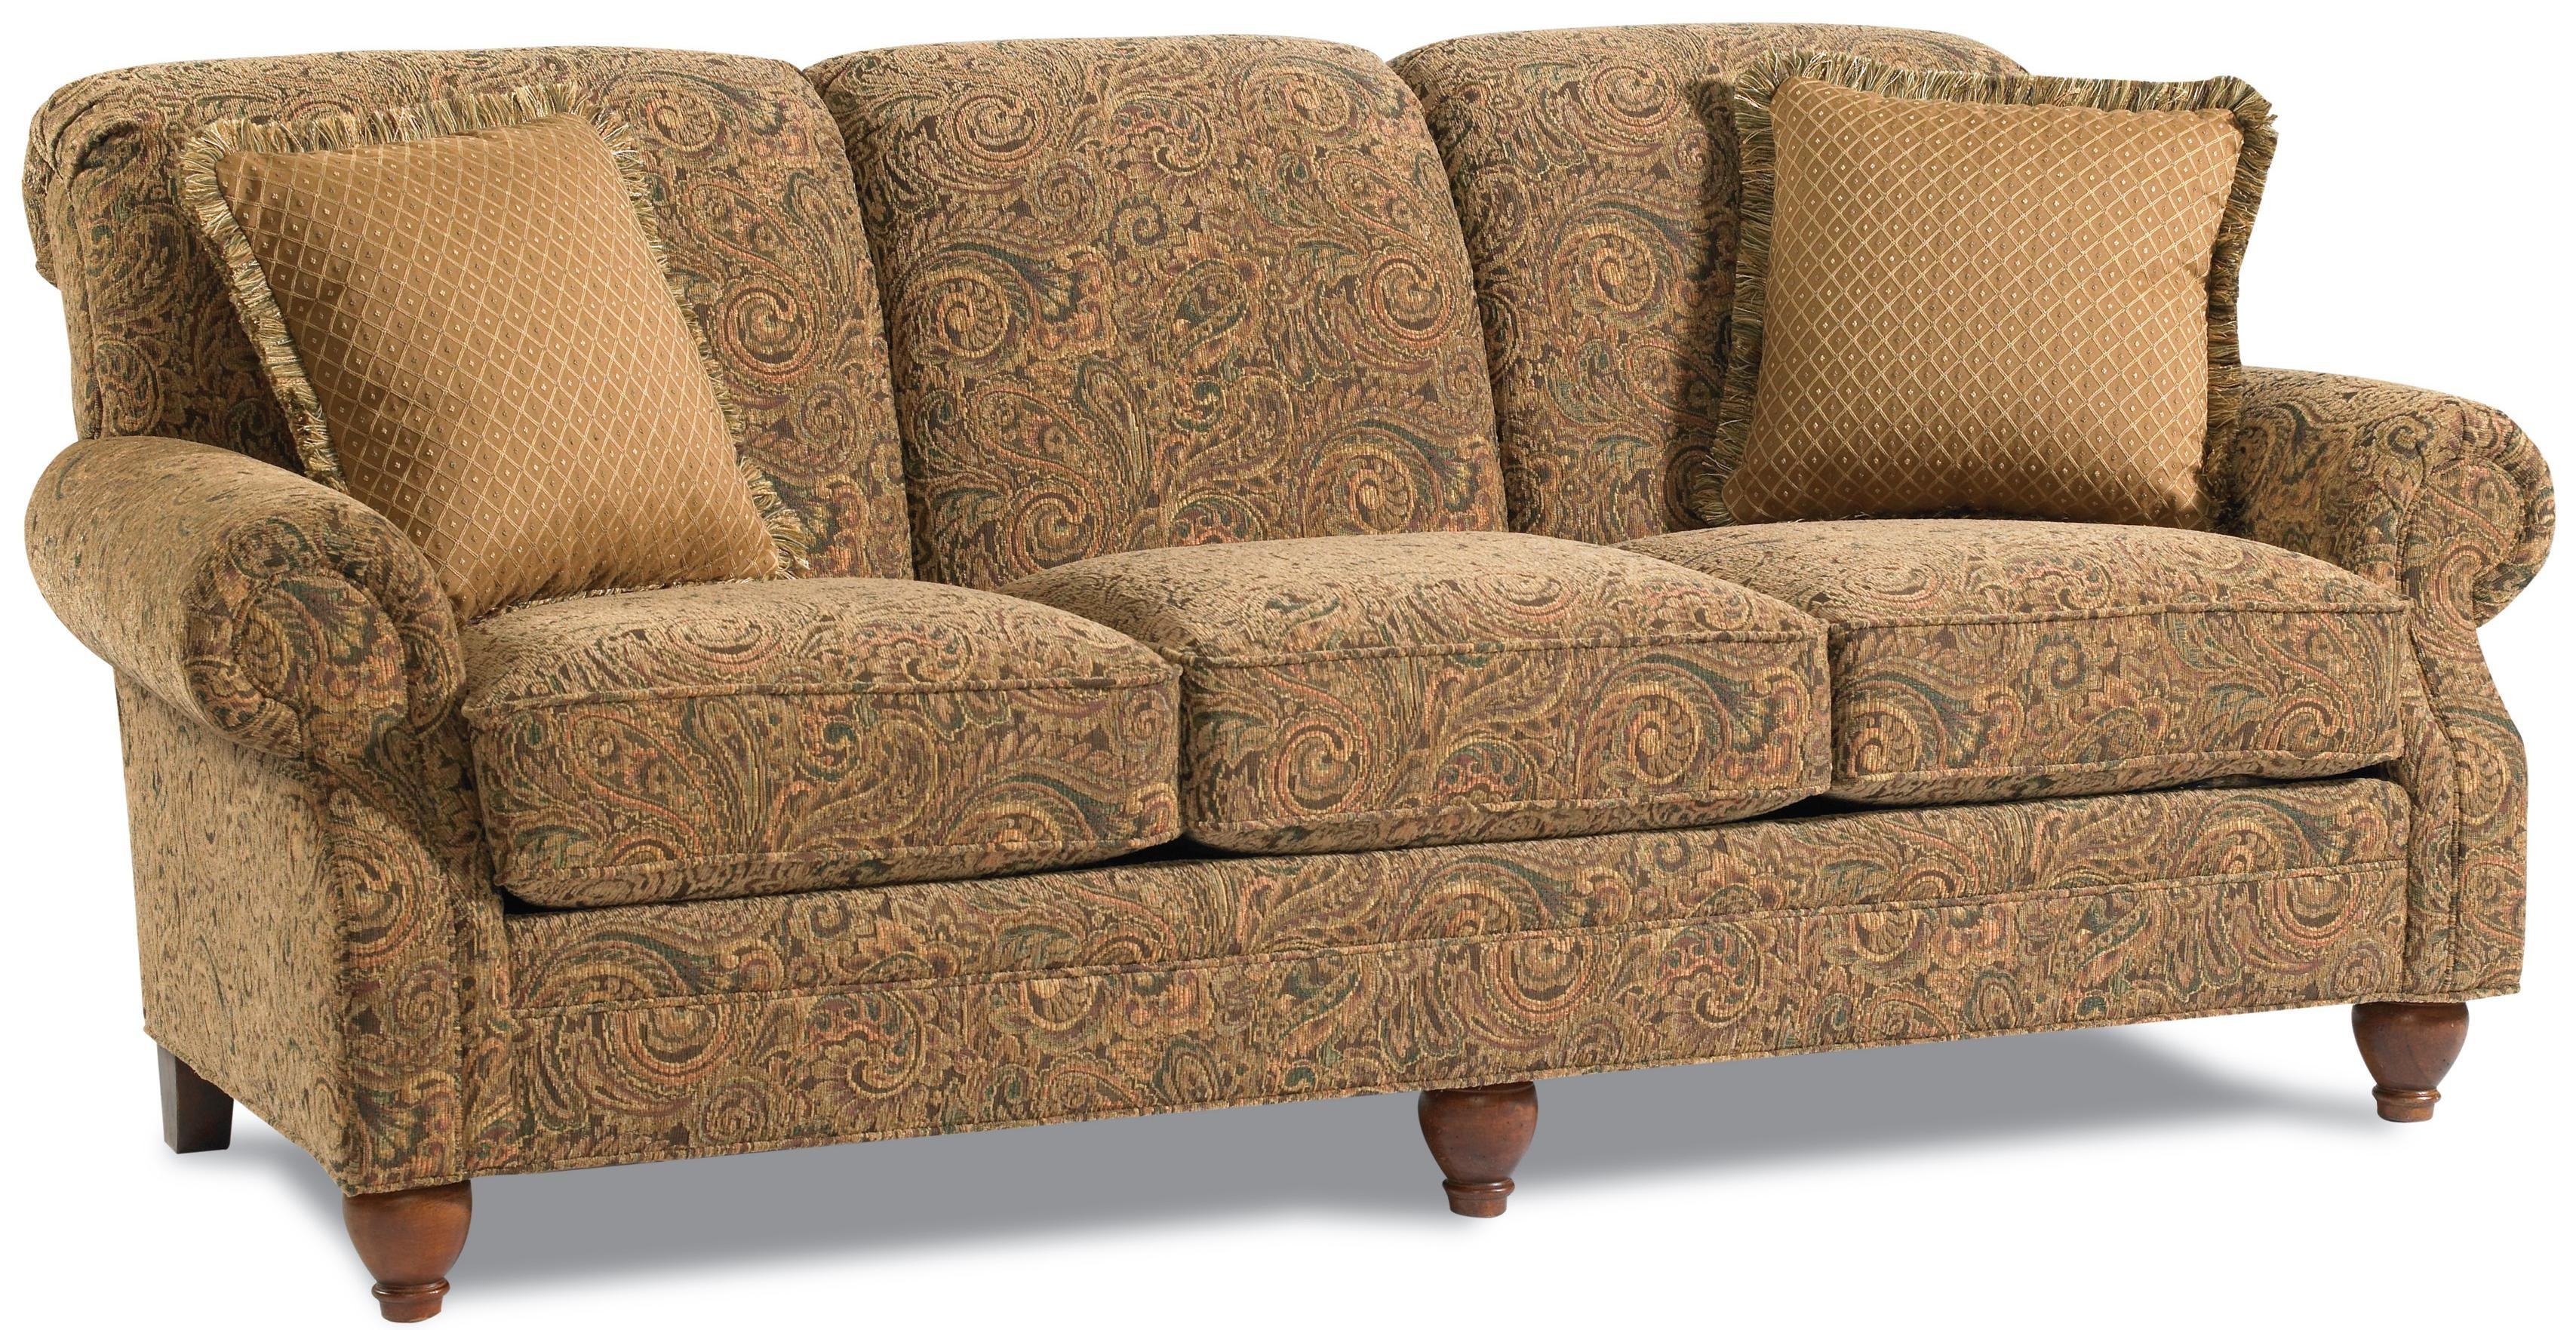 Clayton Marcus sofa Fantastic Clayton Marcus Clementine Traditional Queen Sleeper sofa with Layout